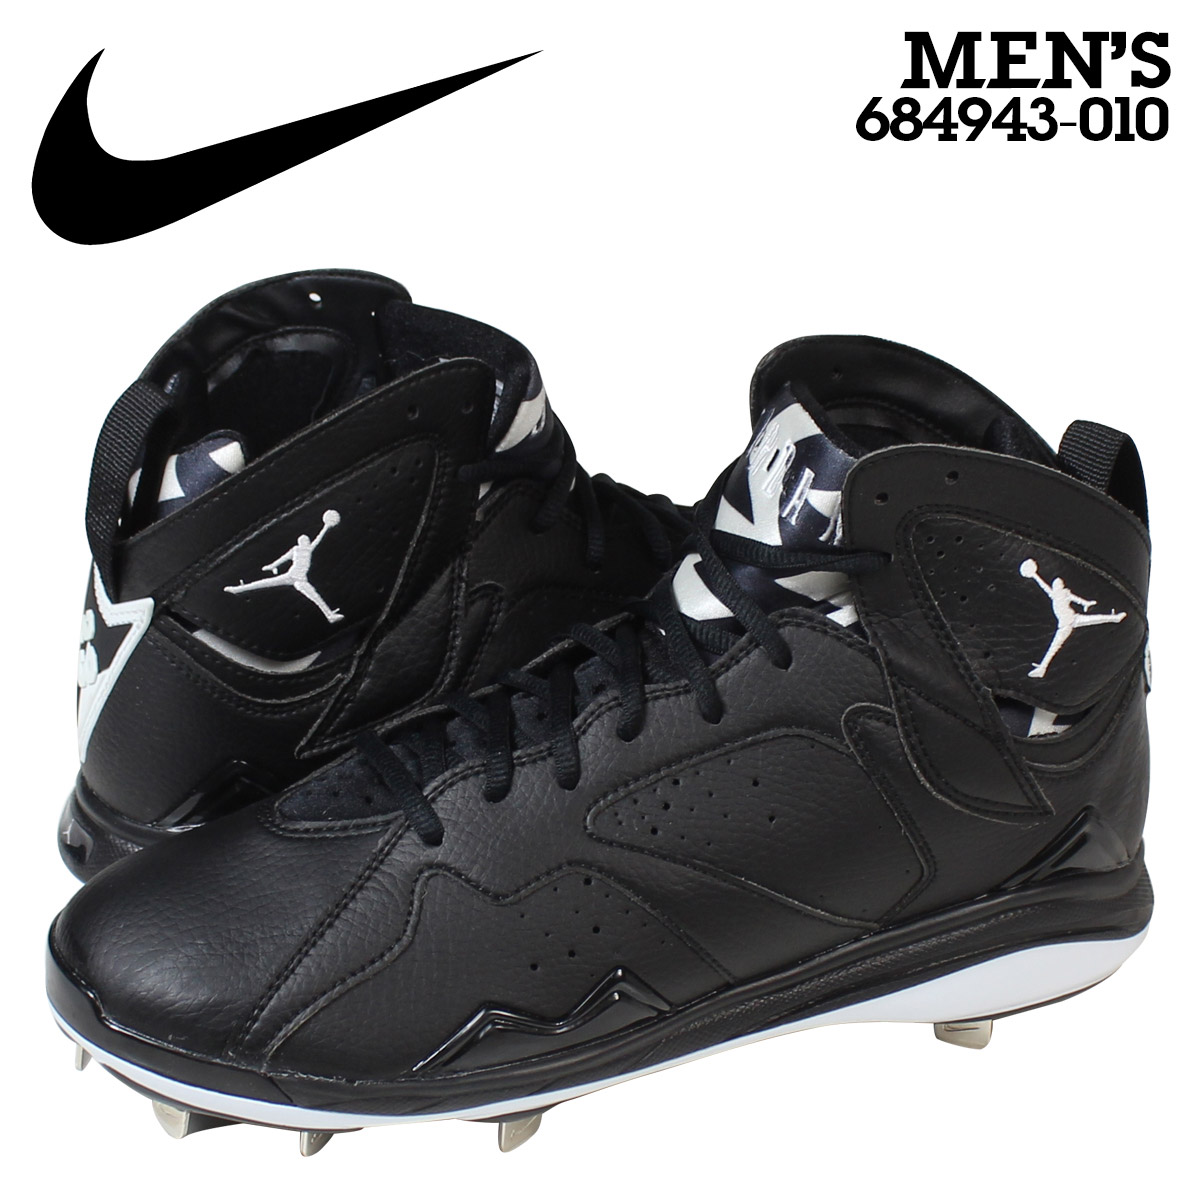 Nike NIKE Jordan baseball spike AIR JORDAN RETRO 7 METAL Air Jordan retro 7  684943-